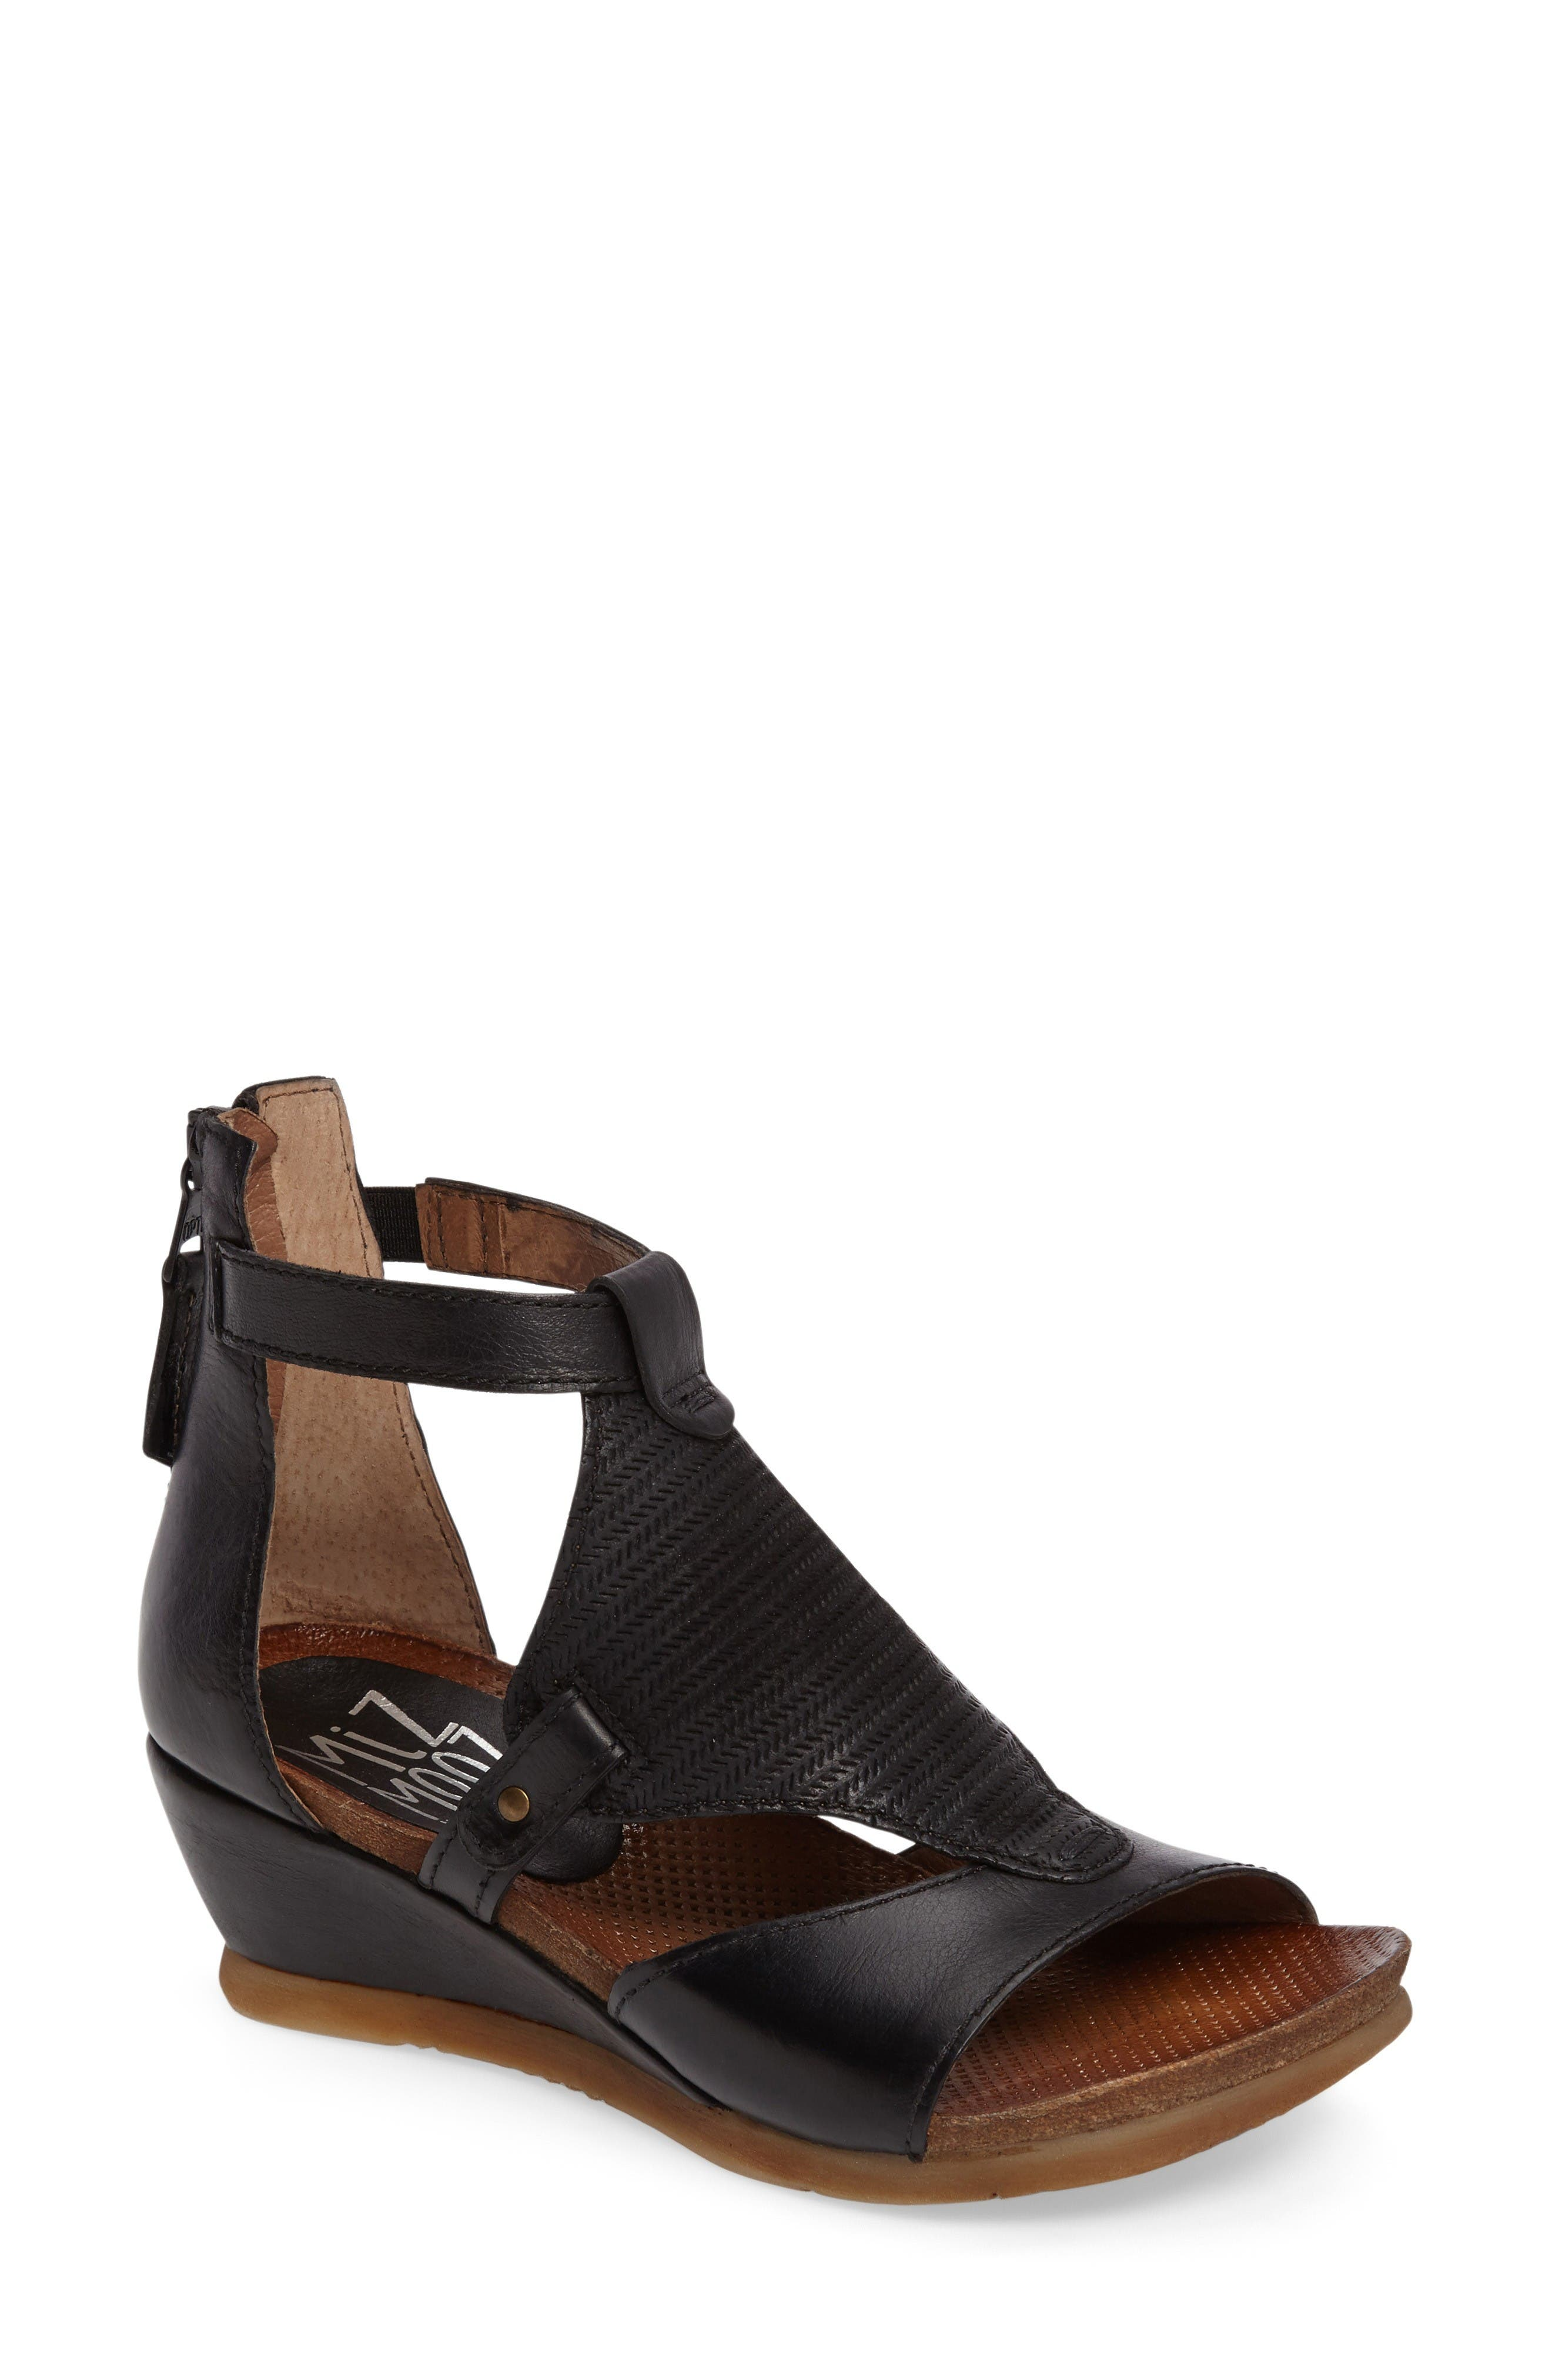 Main Image - Miz Mooz Maisie Wedge Sandal (Women)